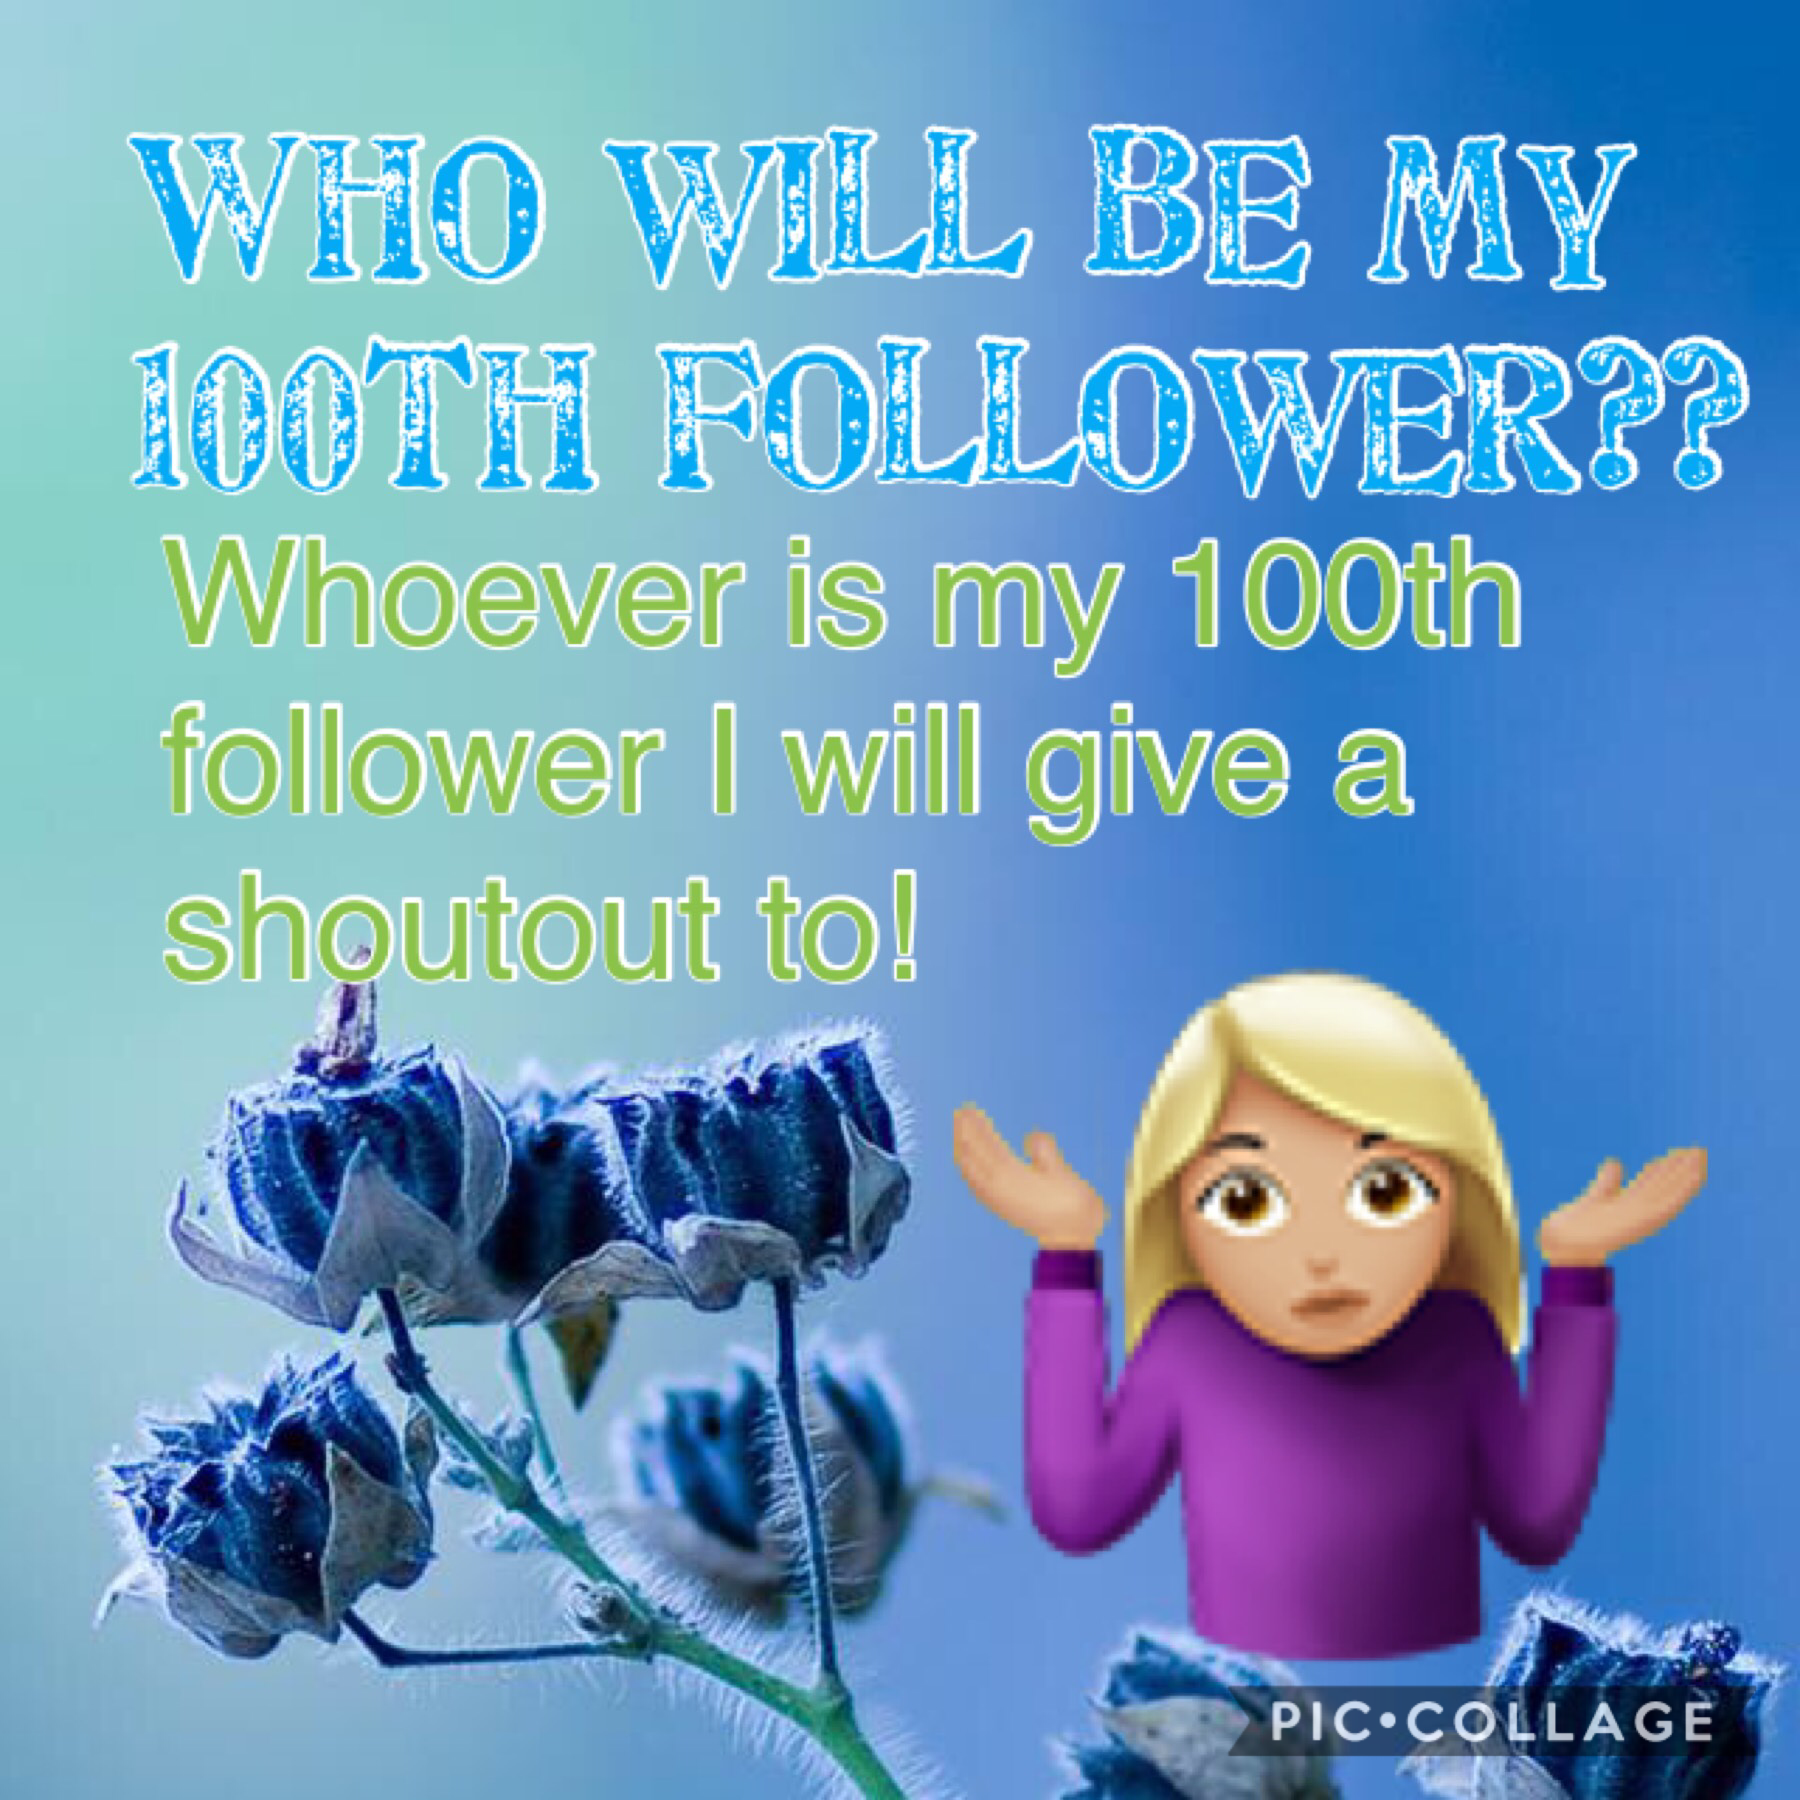 Will you be my 100th follower?? Hmm... 🤔 or will you?? 🤷🏼♀️🤷🏼♀️